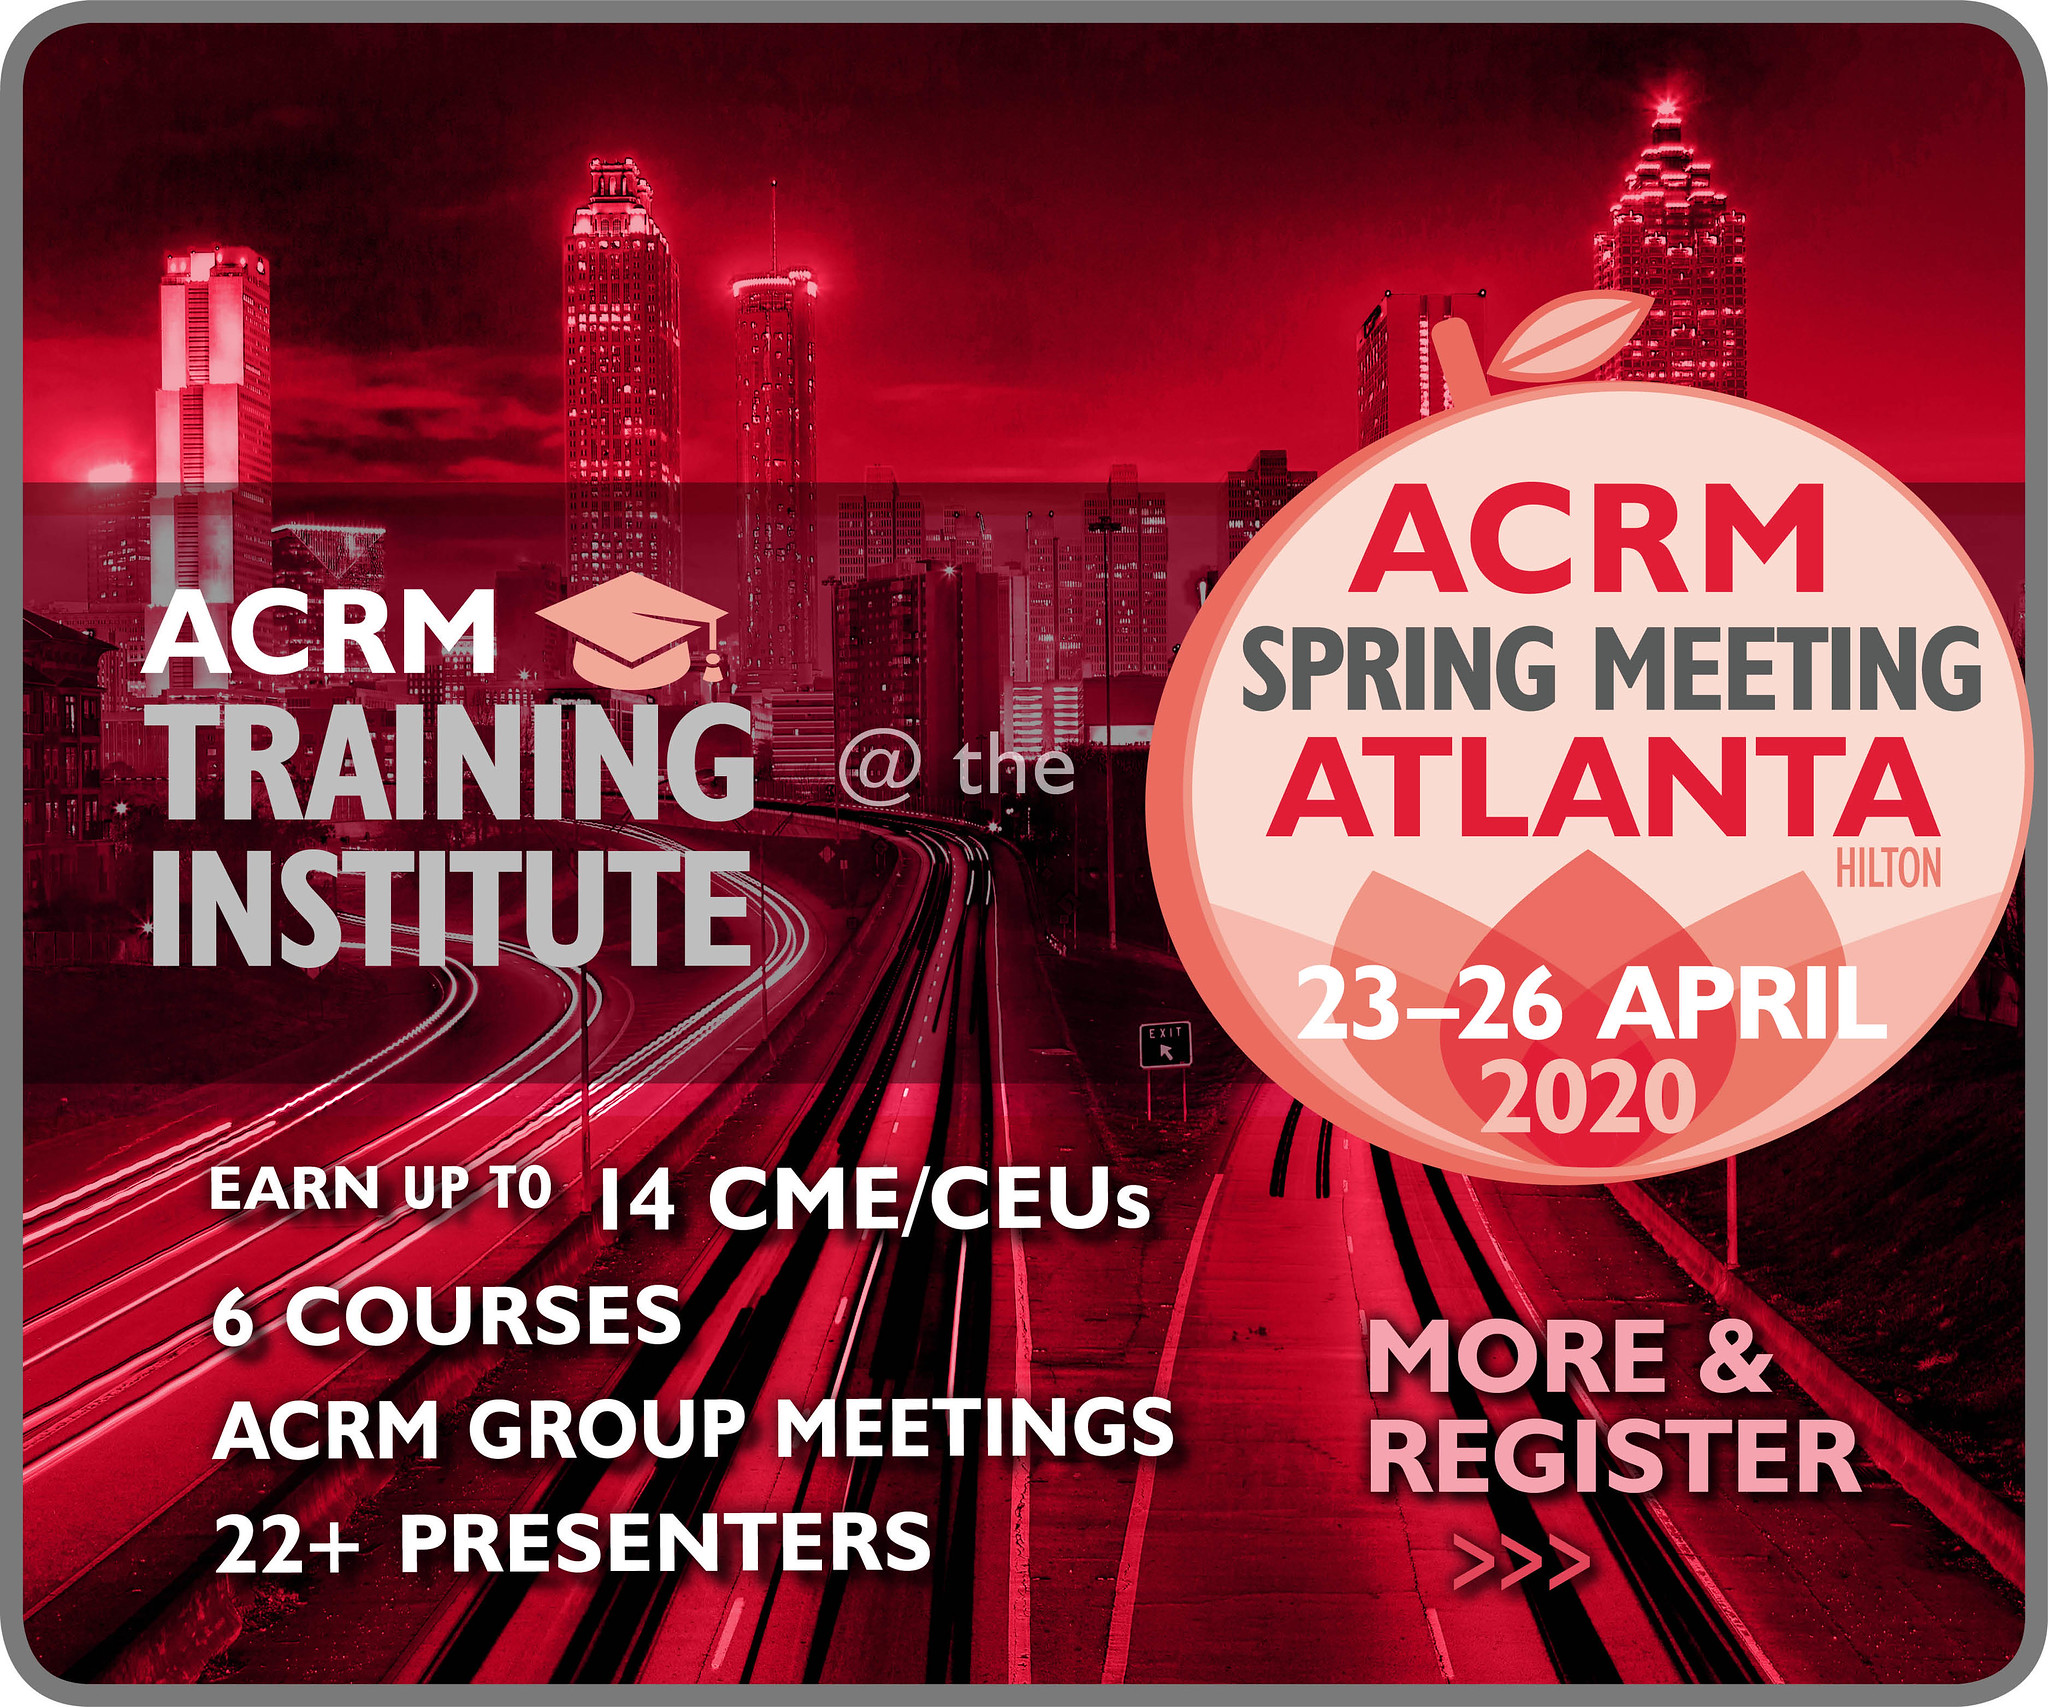 ACRM Training Institute 24-25 April 2020 Atlanta